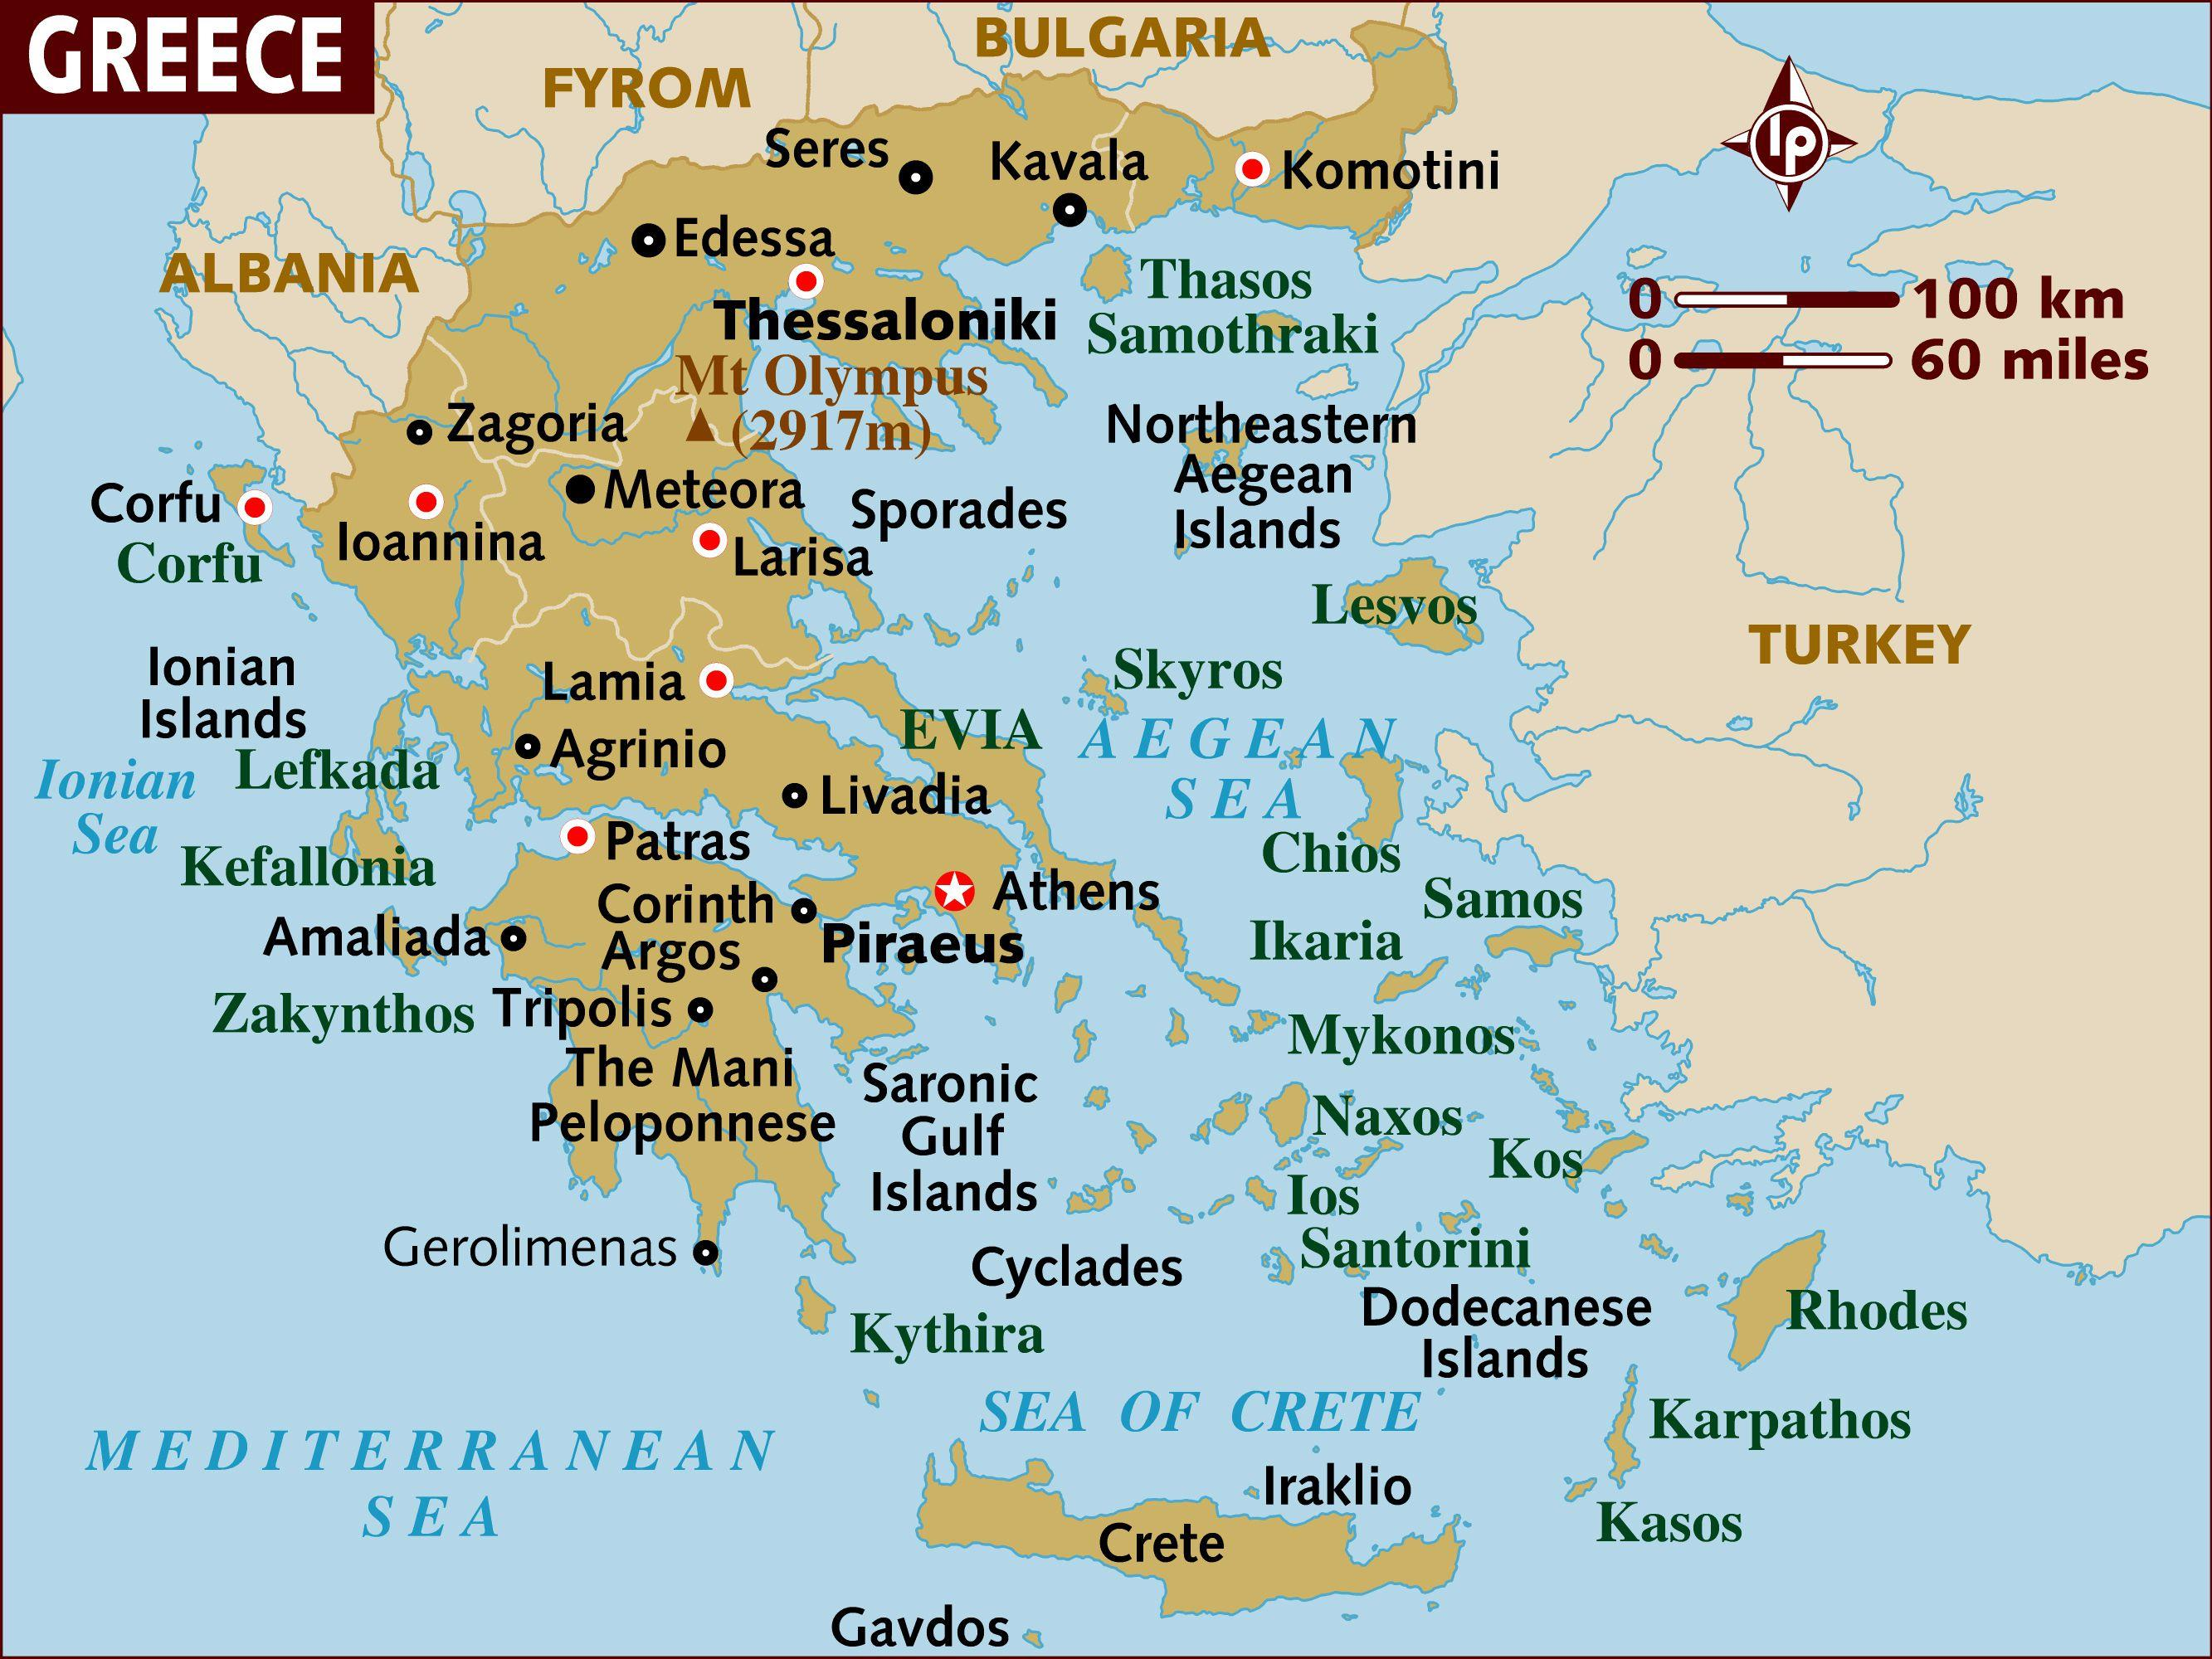 Mainland Greece map - Map of mainland Greece (Southern ... on derry map, british isles europe map, geography europe map, map europe map, western europe map, lancaster europe map, region europe map, central europe map, the orient map, southeastern europe map, population density europe map, cork map, the continent map, waterford map, southern europe map, northern europe map, sligo map, the far east map, continental europe map, eastern europe political map,